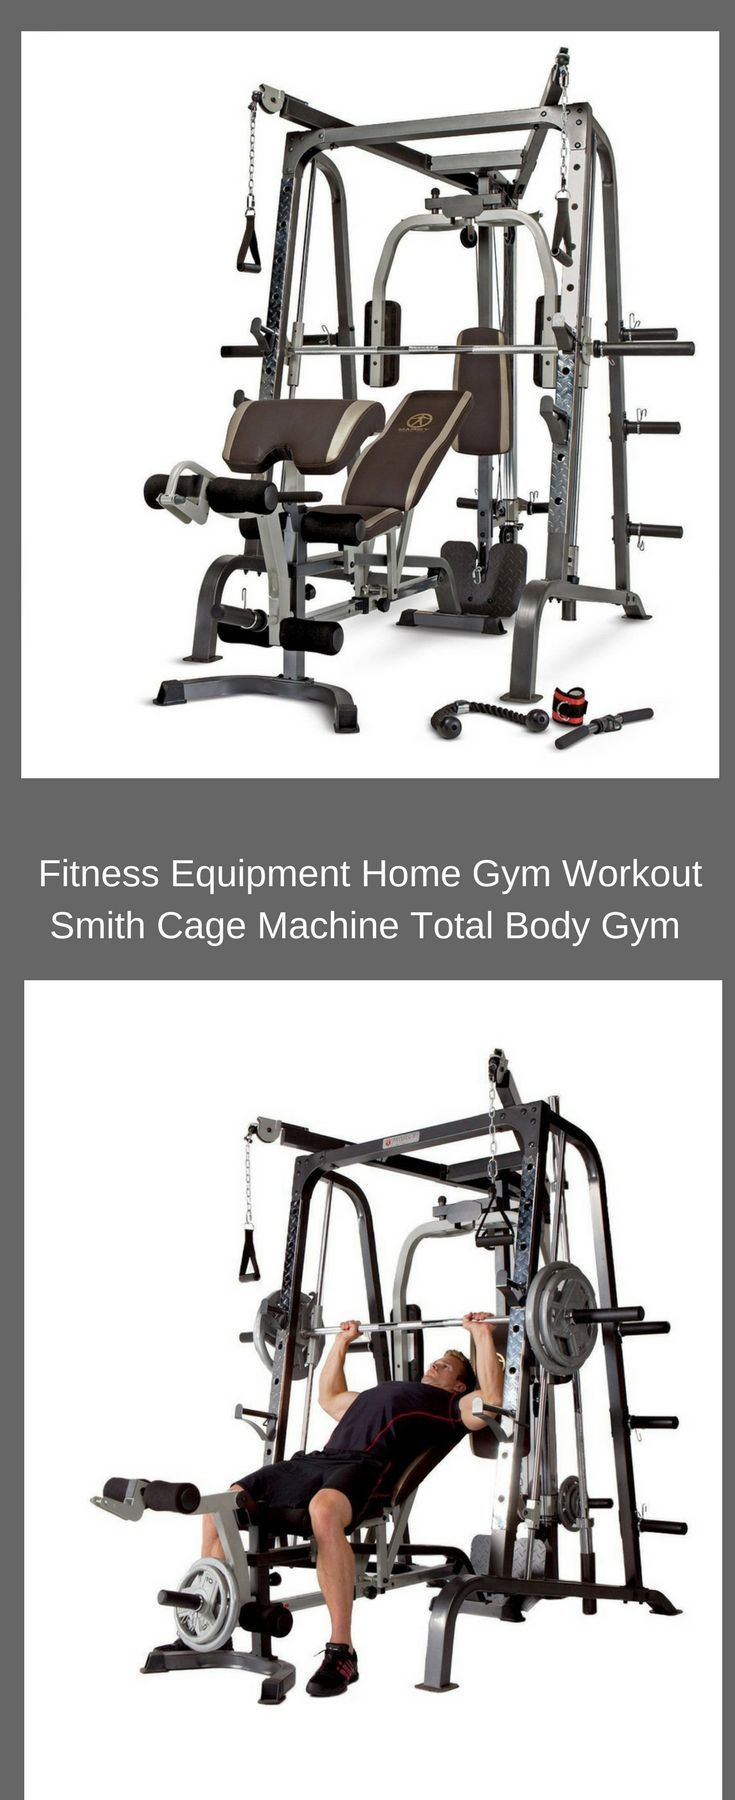 fitness equipment home gym workout smith cage machine total body gym